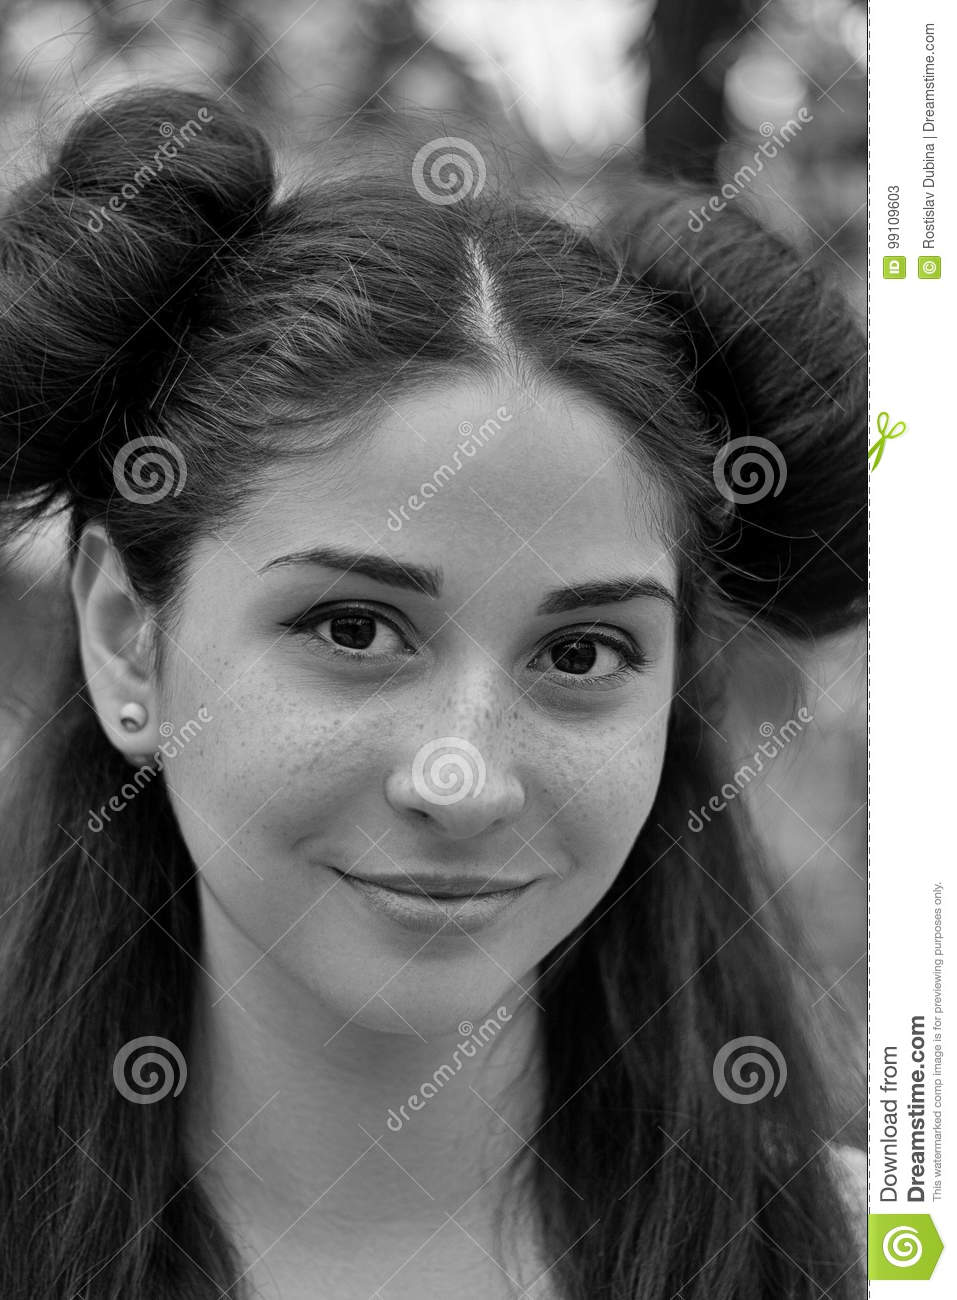 Charming portrait of a young brunette girl with beautiful eyes black and white